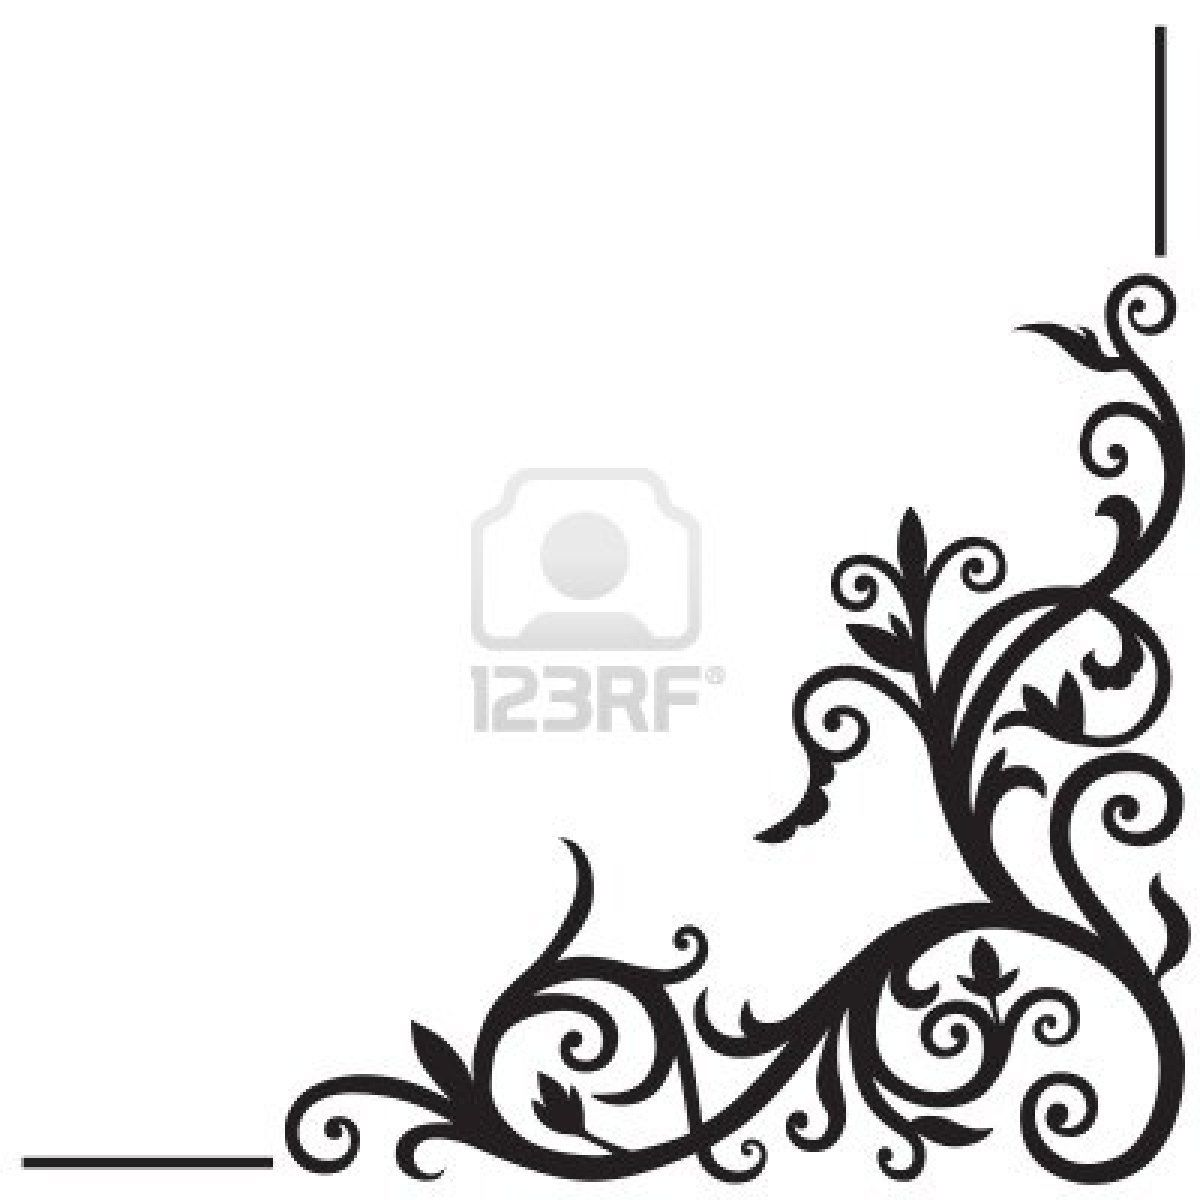 Corner Design Simple flower corner designs | Reception ...